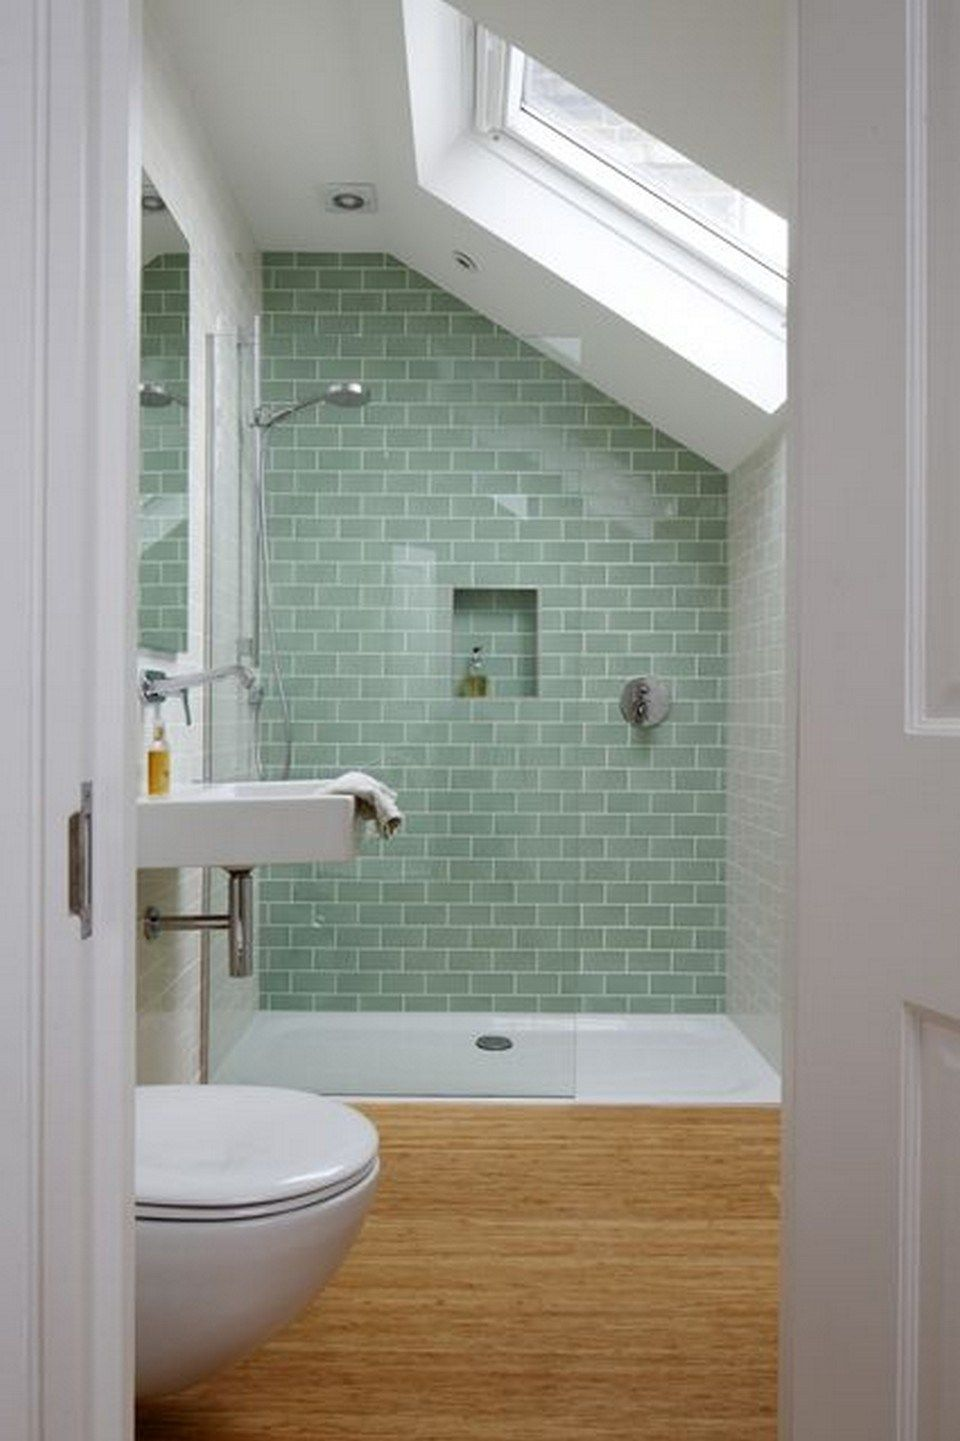 99 Attic Bathroom Ideas Slanted Ceiling 15 For The Home